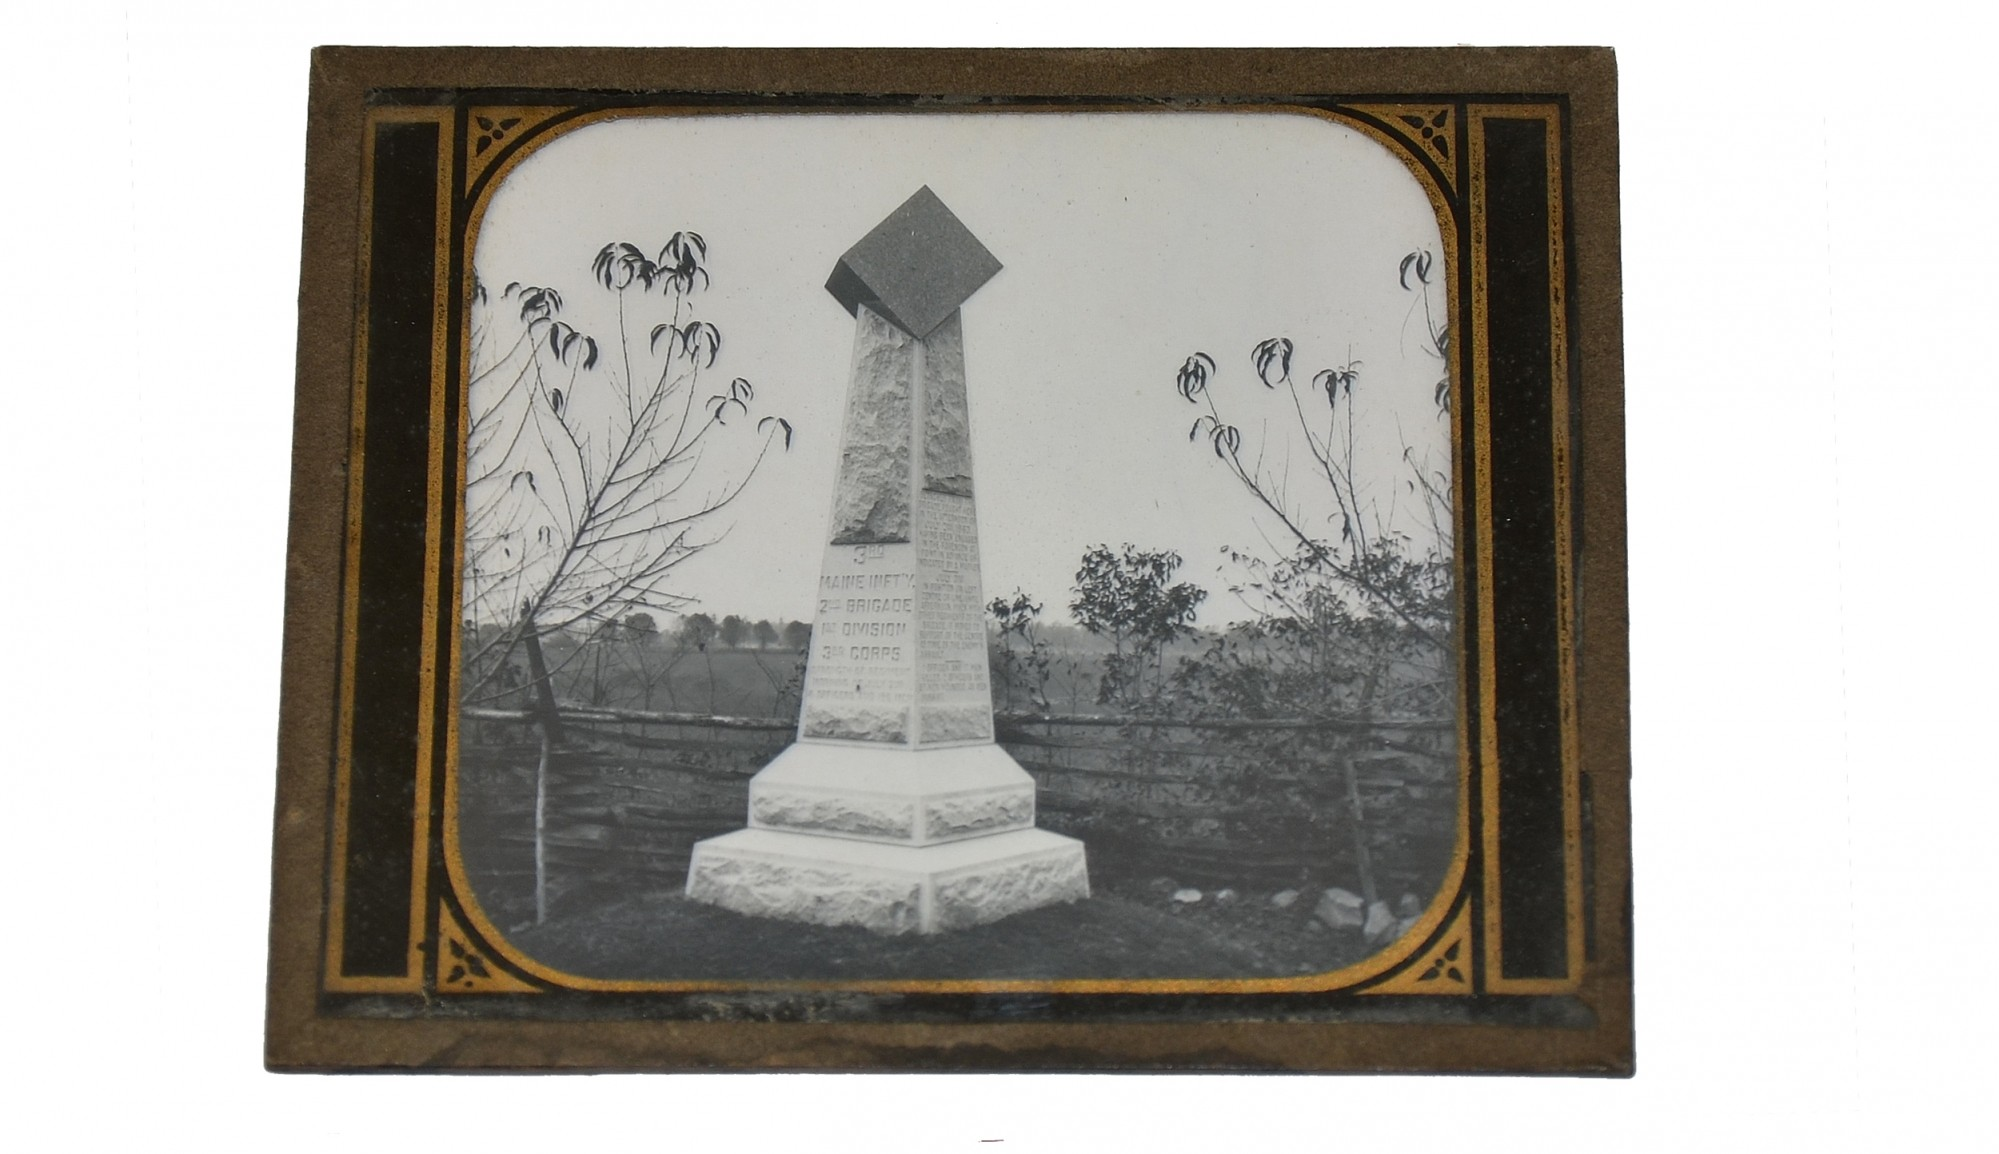 GLASS LANTERN SLIDE, 3RD MAINE INFANTRY, PEACH ORCHARD, GETTYSBURG, 1889